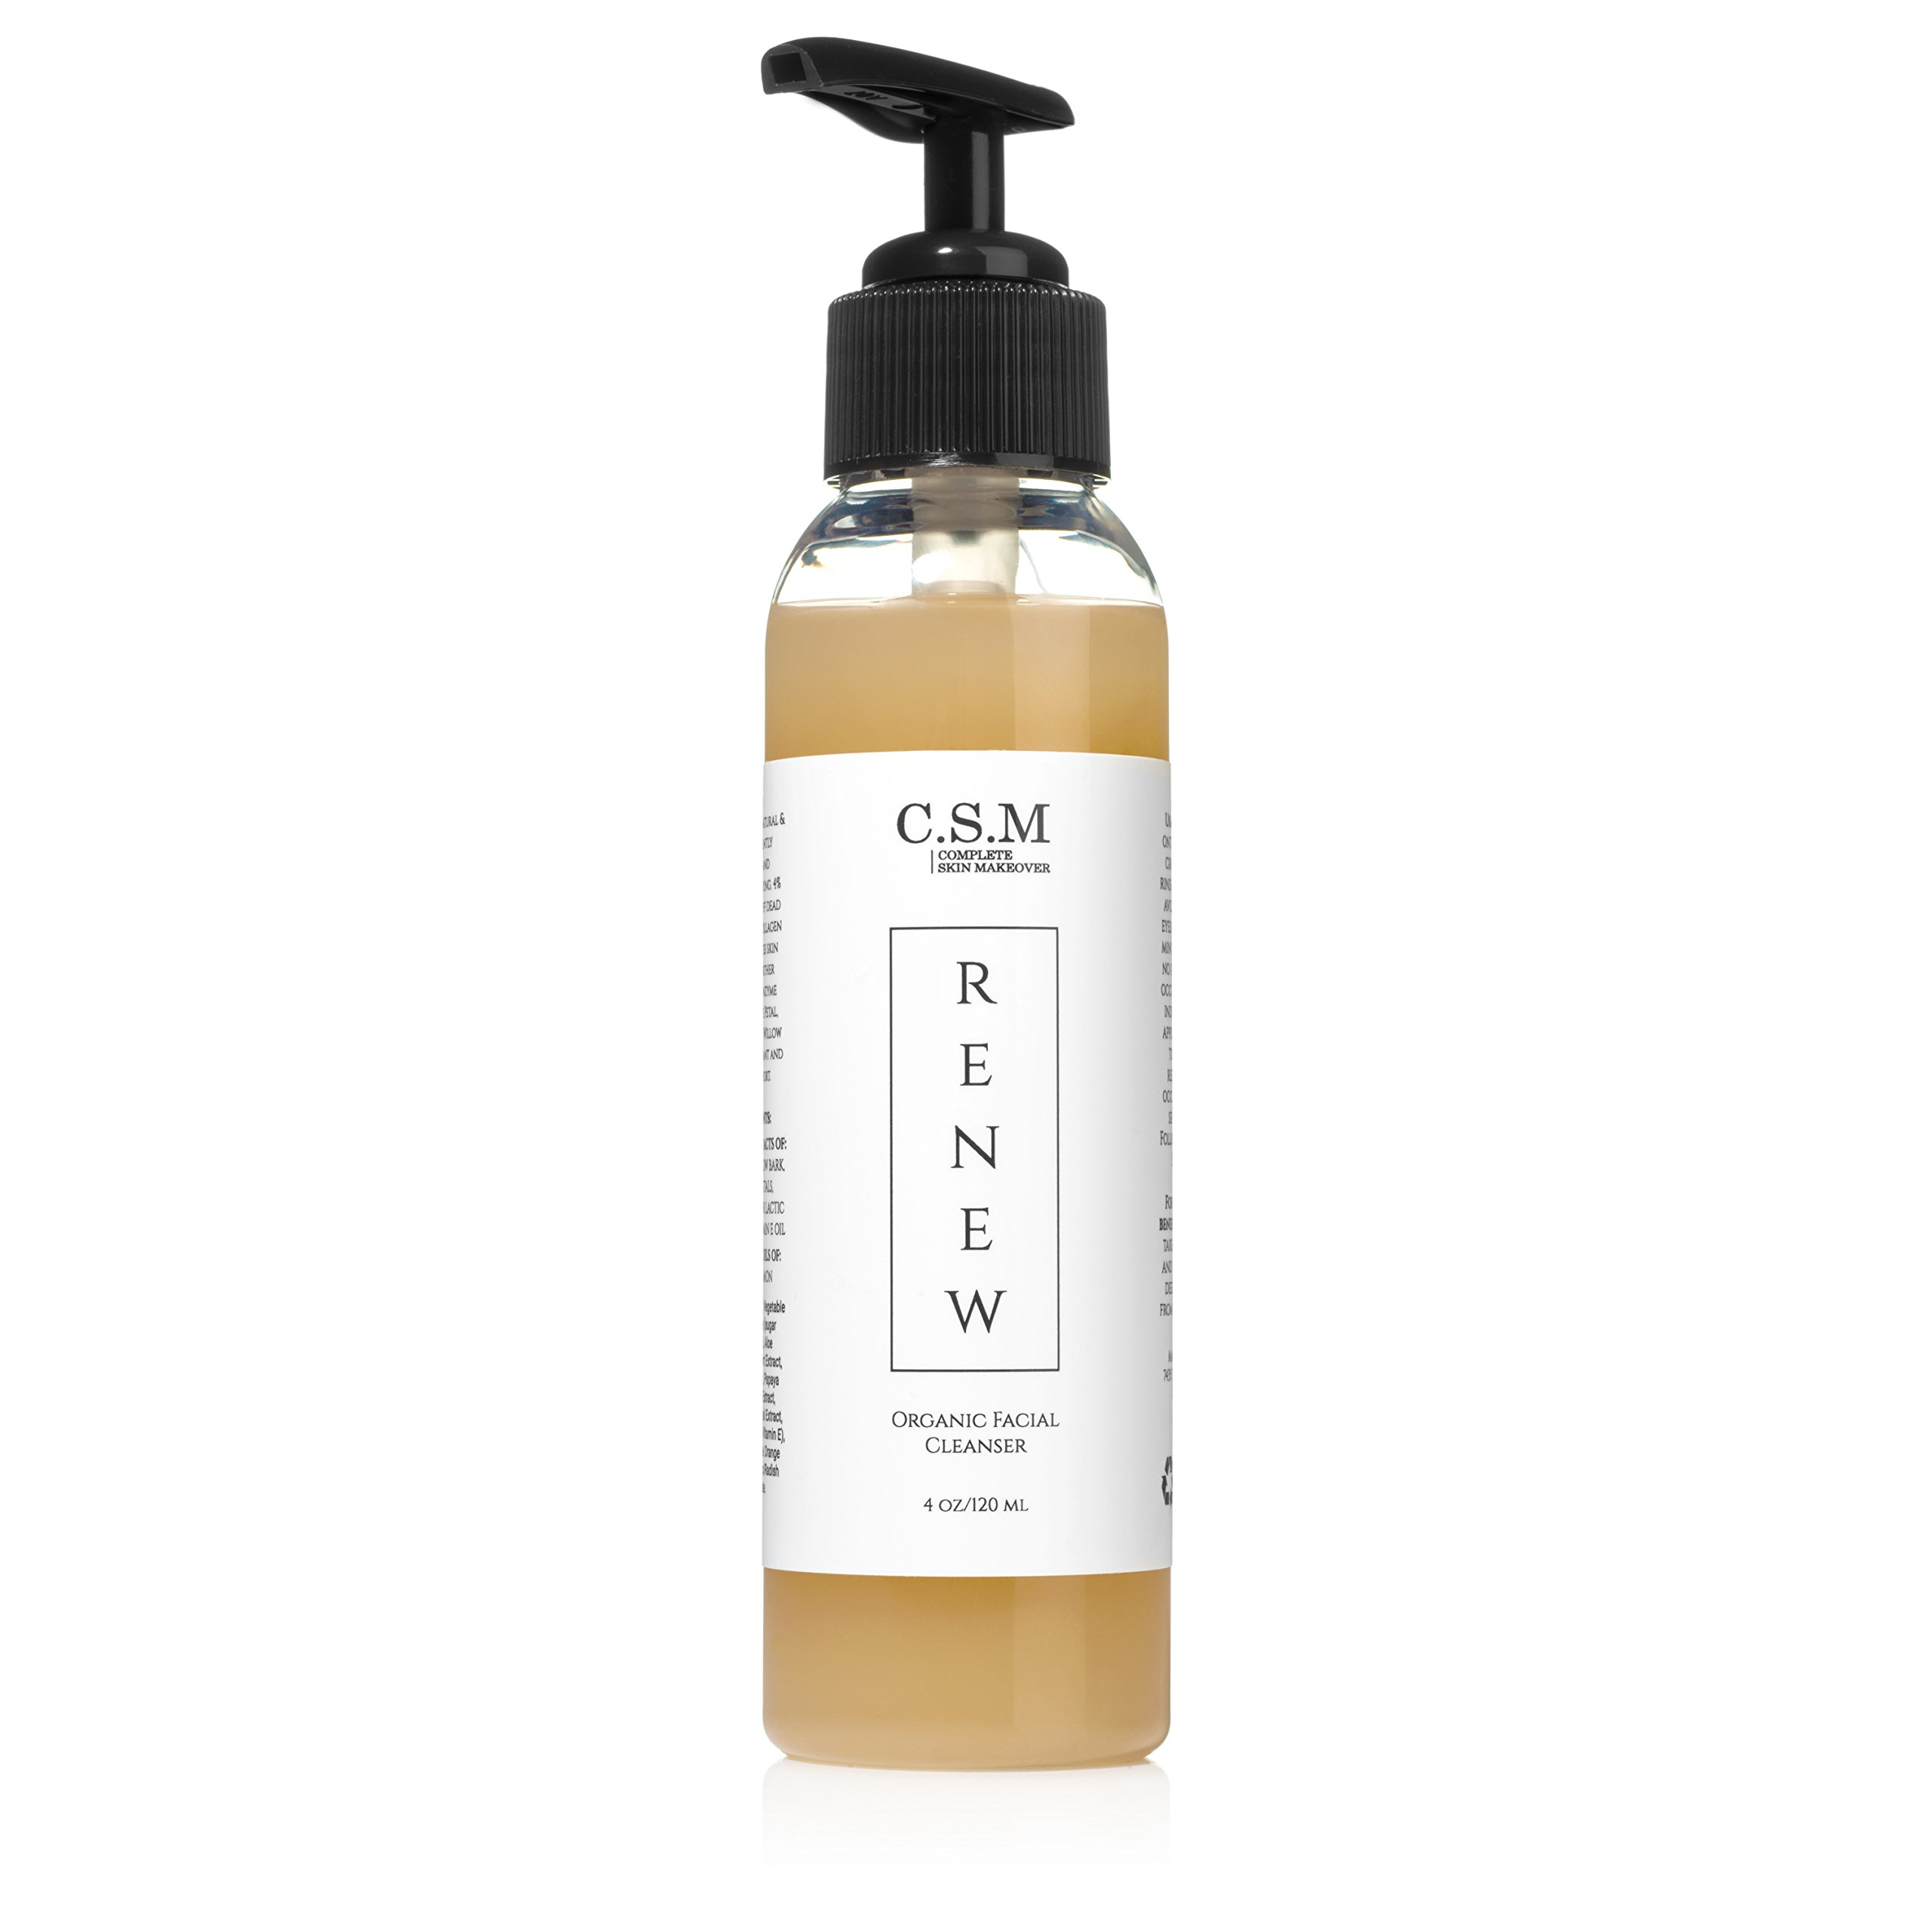 CSM Organic Face Wash for Gently Exfoliating and Clarifying Acne Prone and Dry Skin, Natural Face Cleanser with Essential Oils for Reducing Pores, RENEW Antiaging Organic Facial Wash Made in the USA